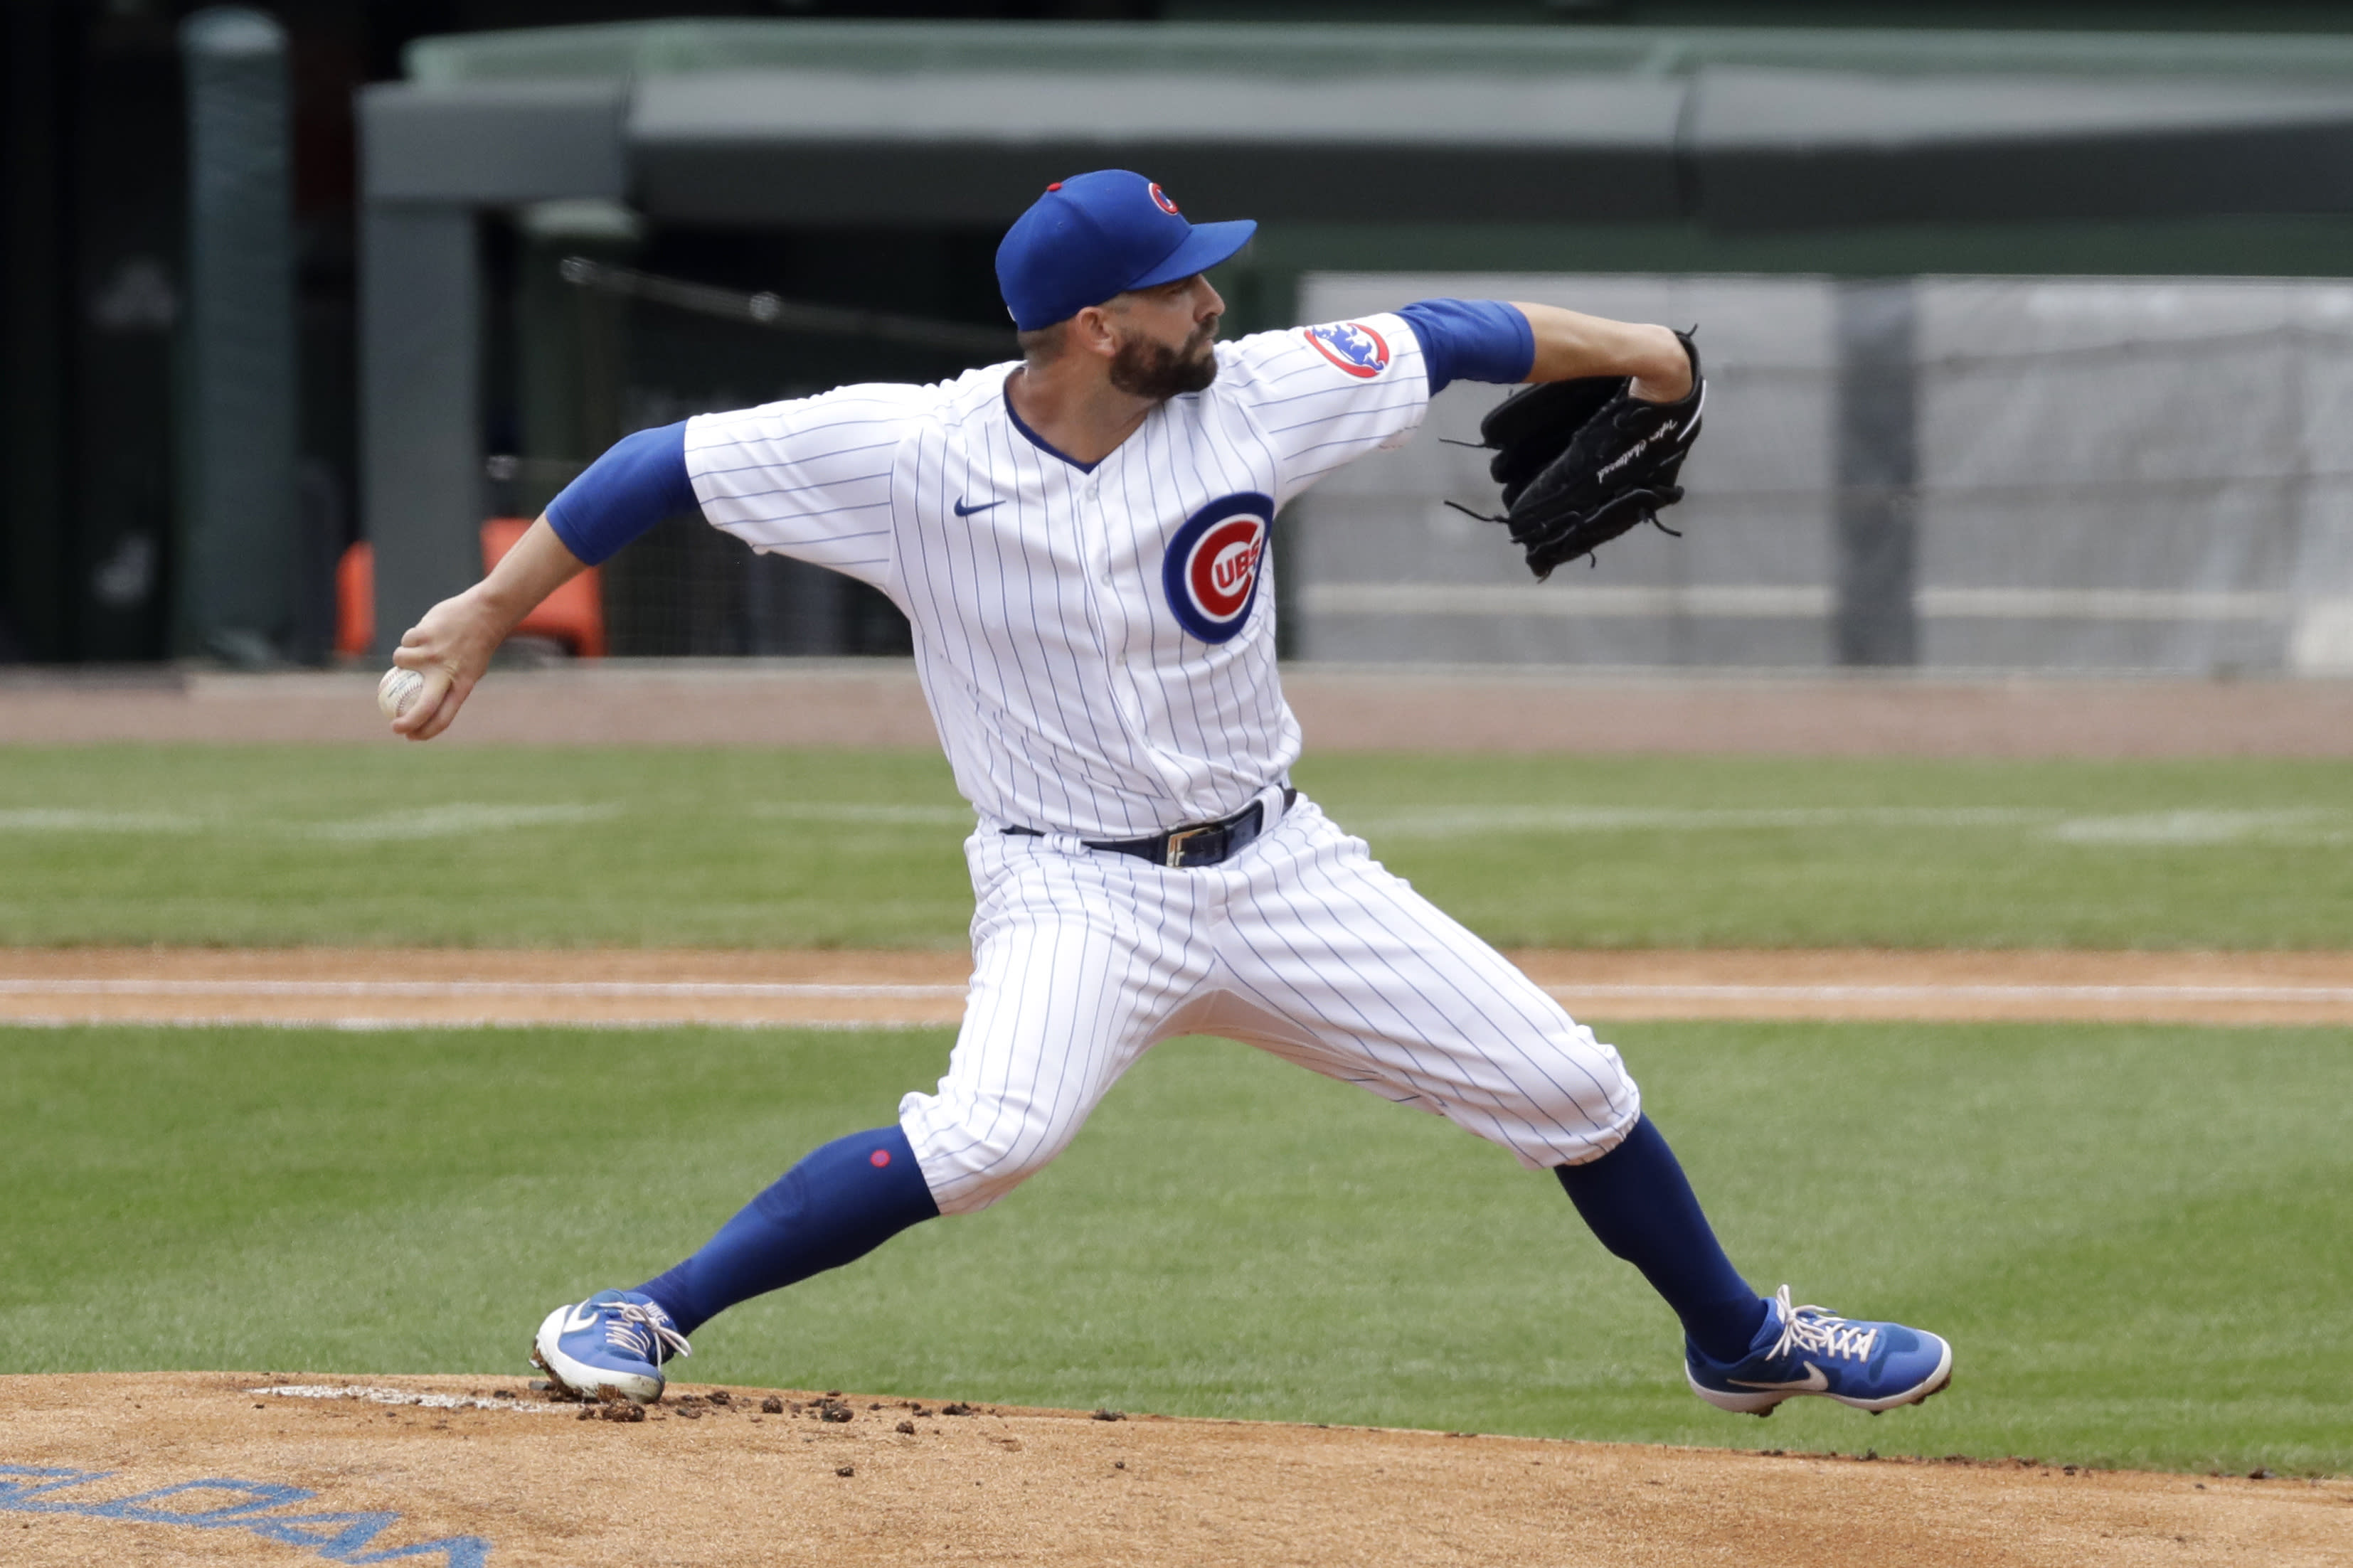 Chicago Cubs pitcher Tyler Chatwood throws the ball during an intra-squad baseball game at Wrigley Field in Chicago, Wednesday, July 15, 2020. (AP Photo/Nam Y. Huh)